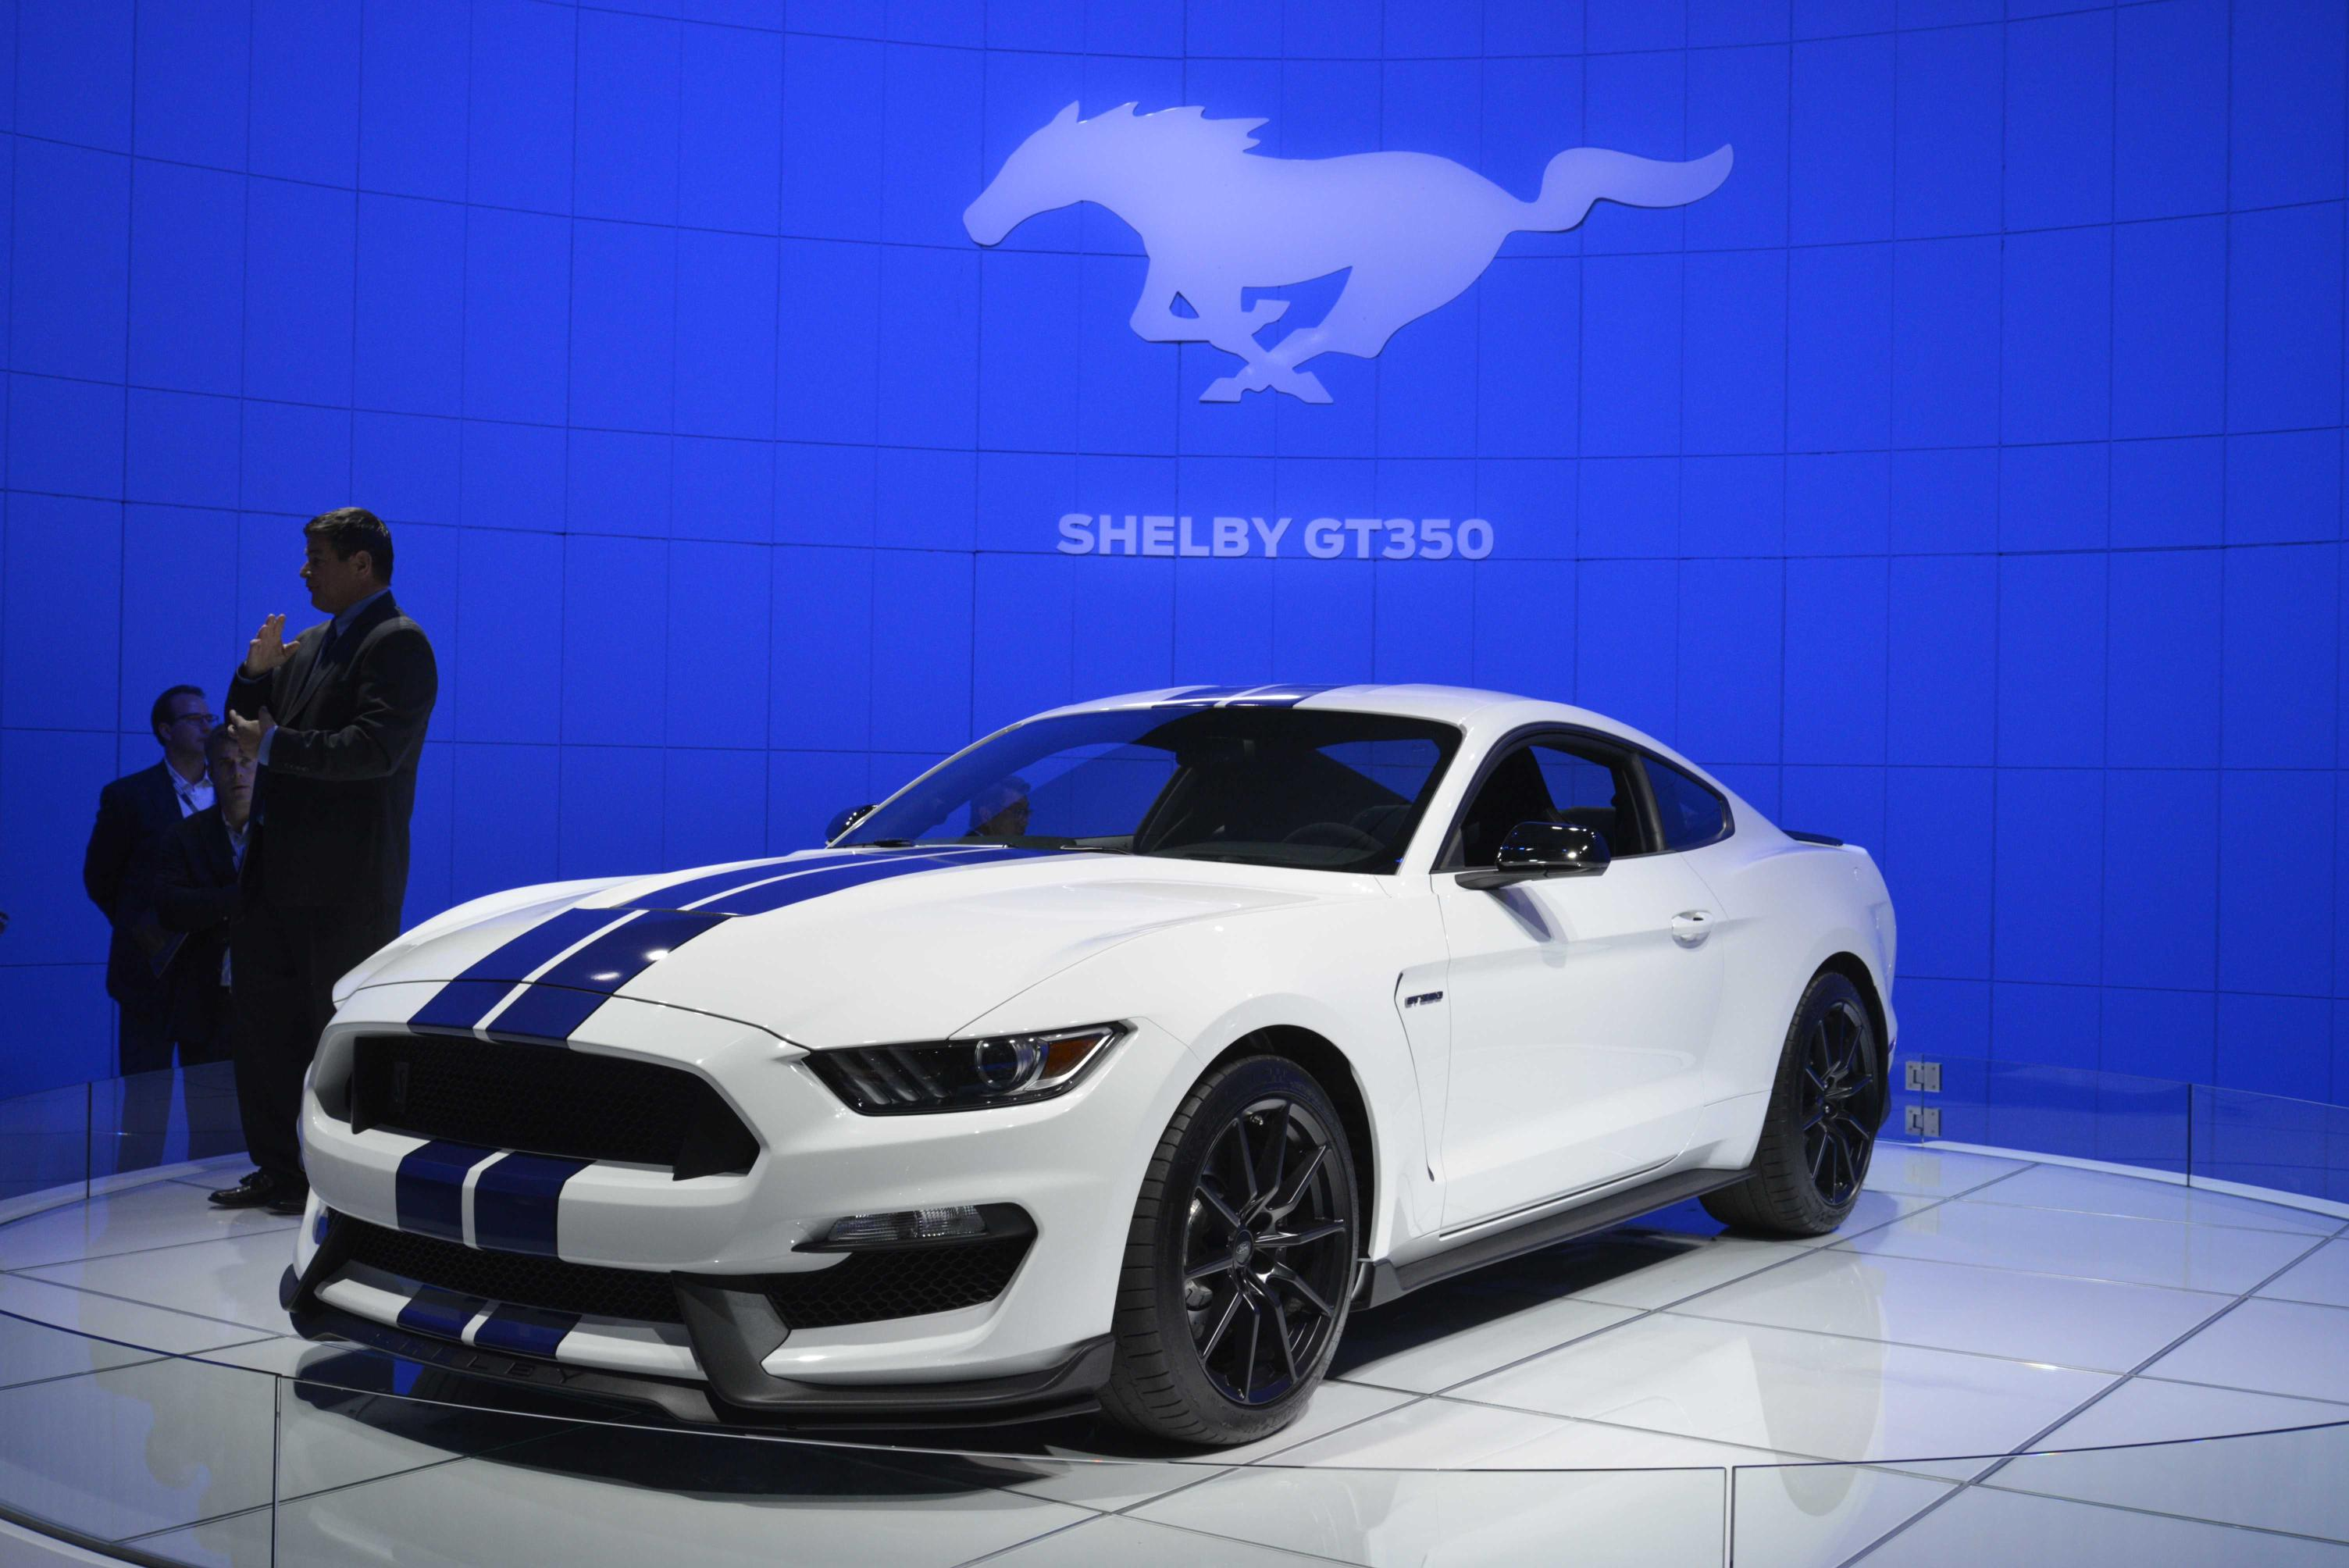 2016 ford mustang shelby gt350 priced at 47 870 gt350r at 61 370 leaked info autoevolution. Black Bedroom Furniture Sets. Home Design Ideas